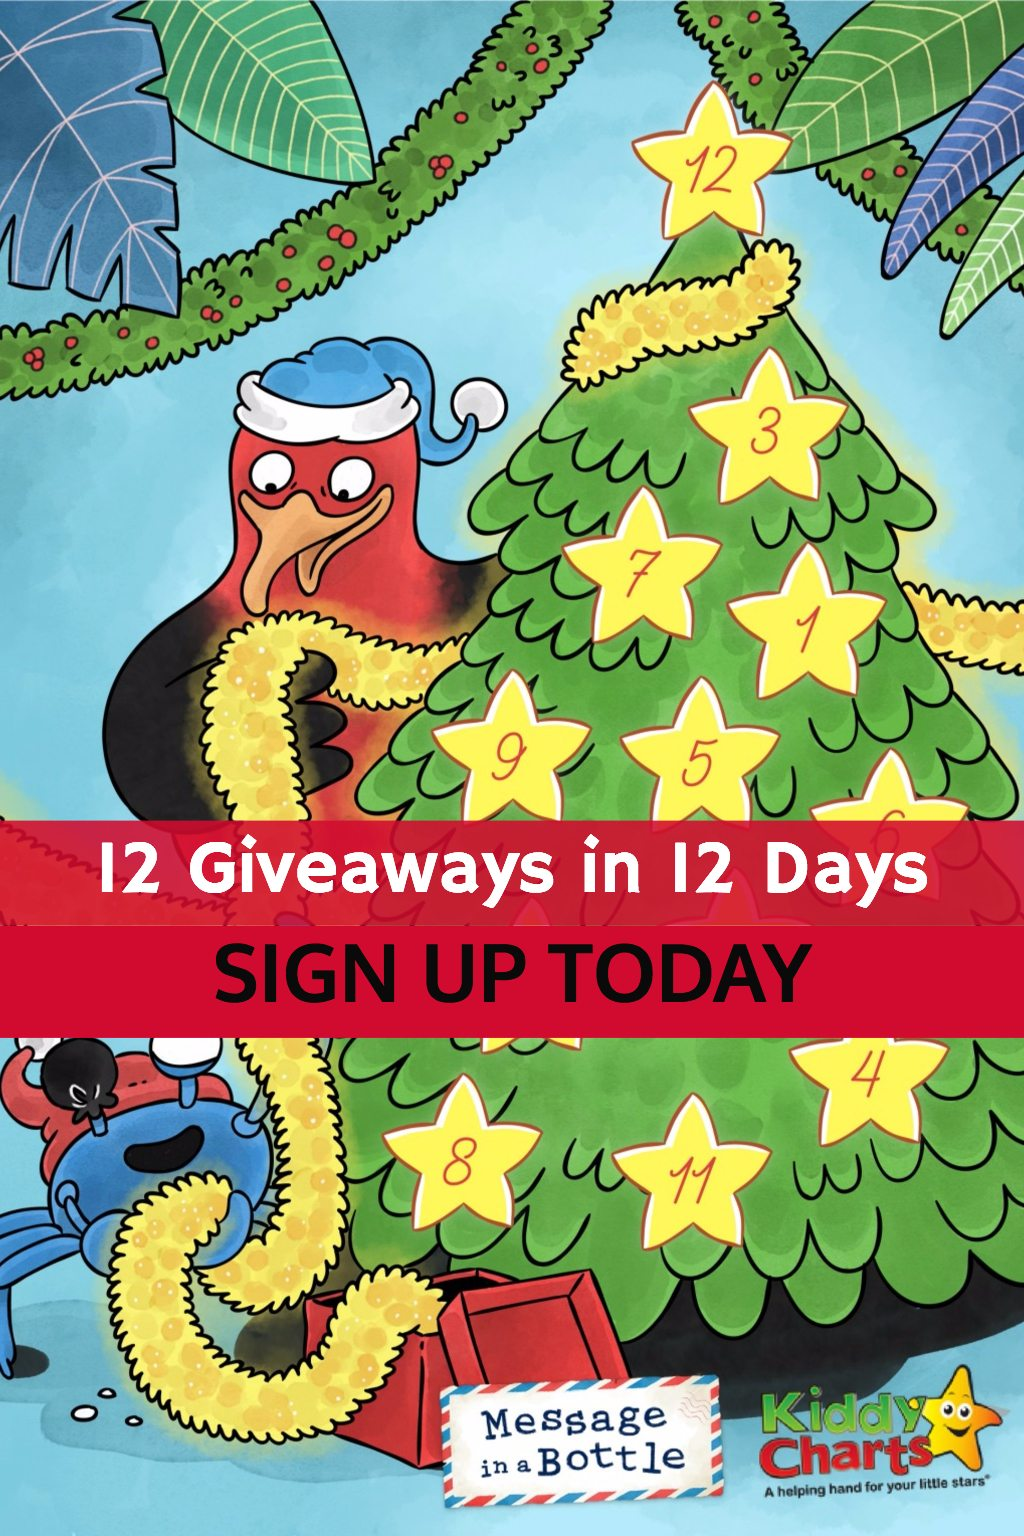 We have 12 christmas competitions from 1st December - sign up today for a chance to get Christmas sorted for the kids! #giveaways #christmas #adventcalendars